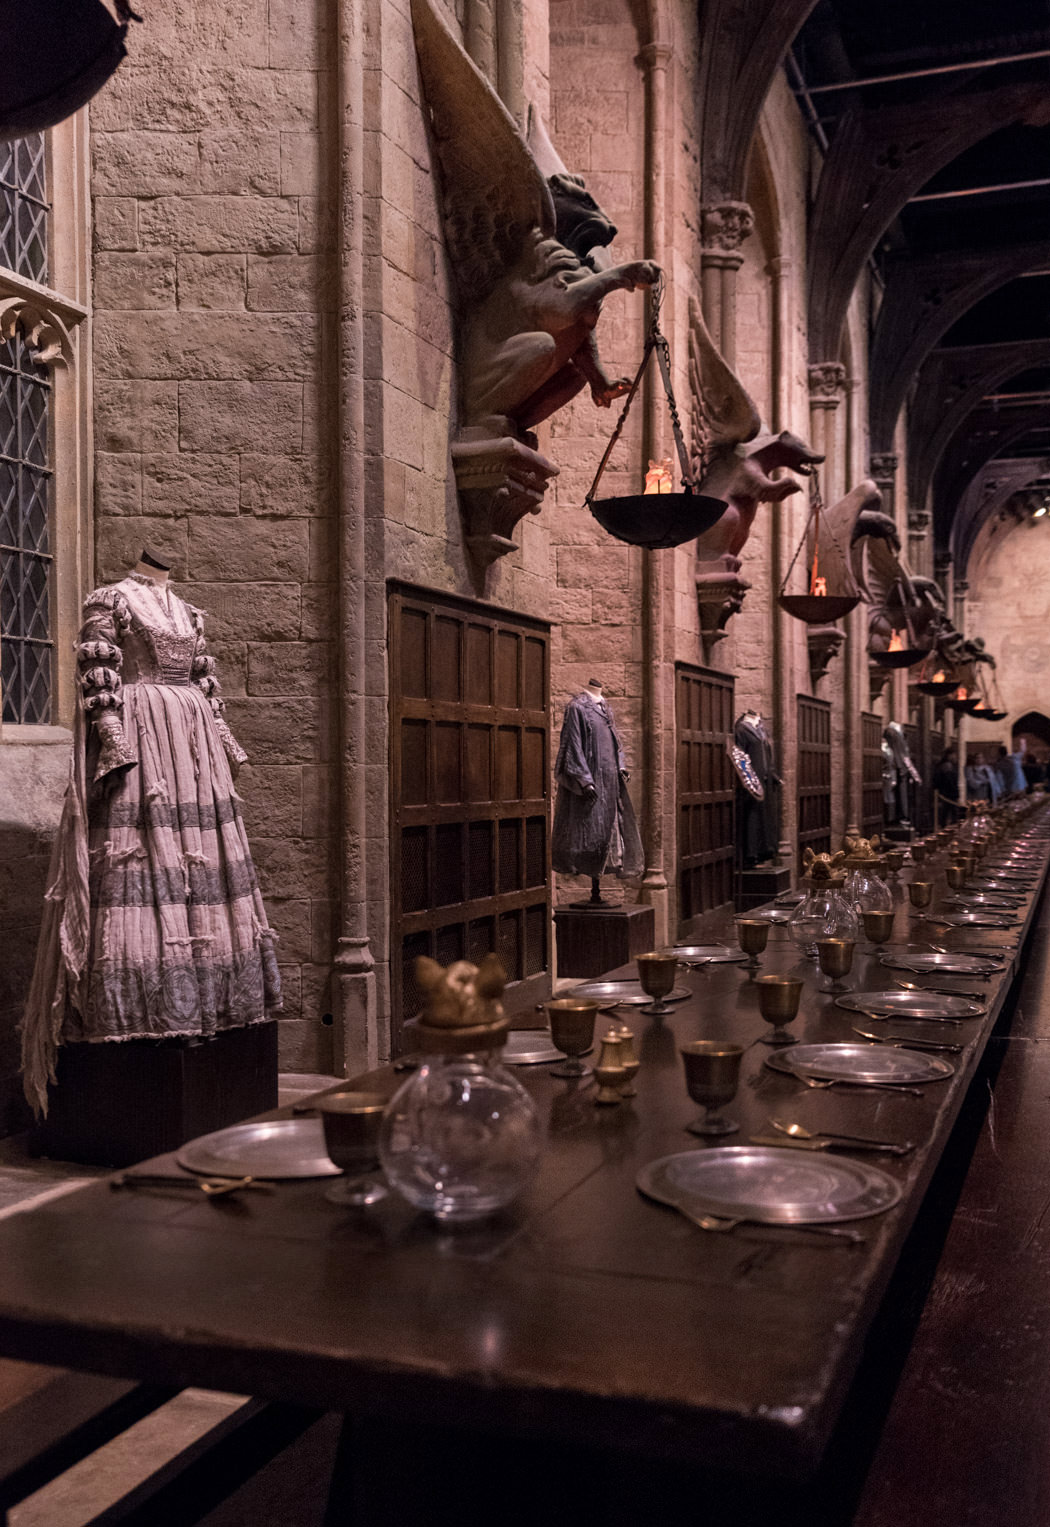 Blog-Mode-And-The-City-Lifestyle-Visite-Studios-Harry-Potter-Londres-5